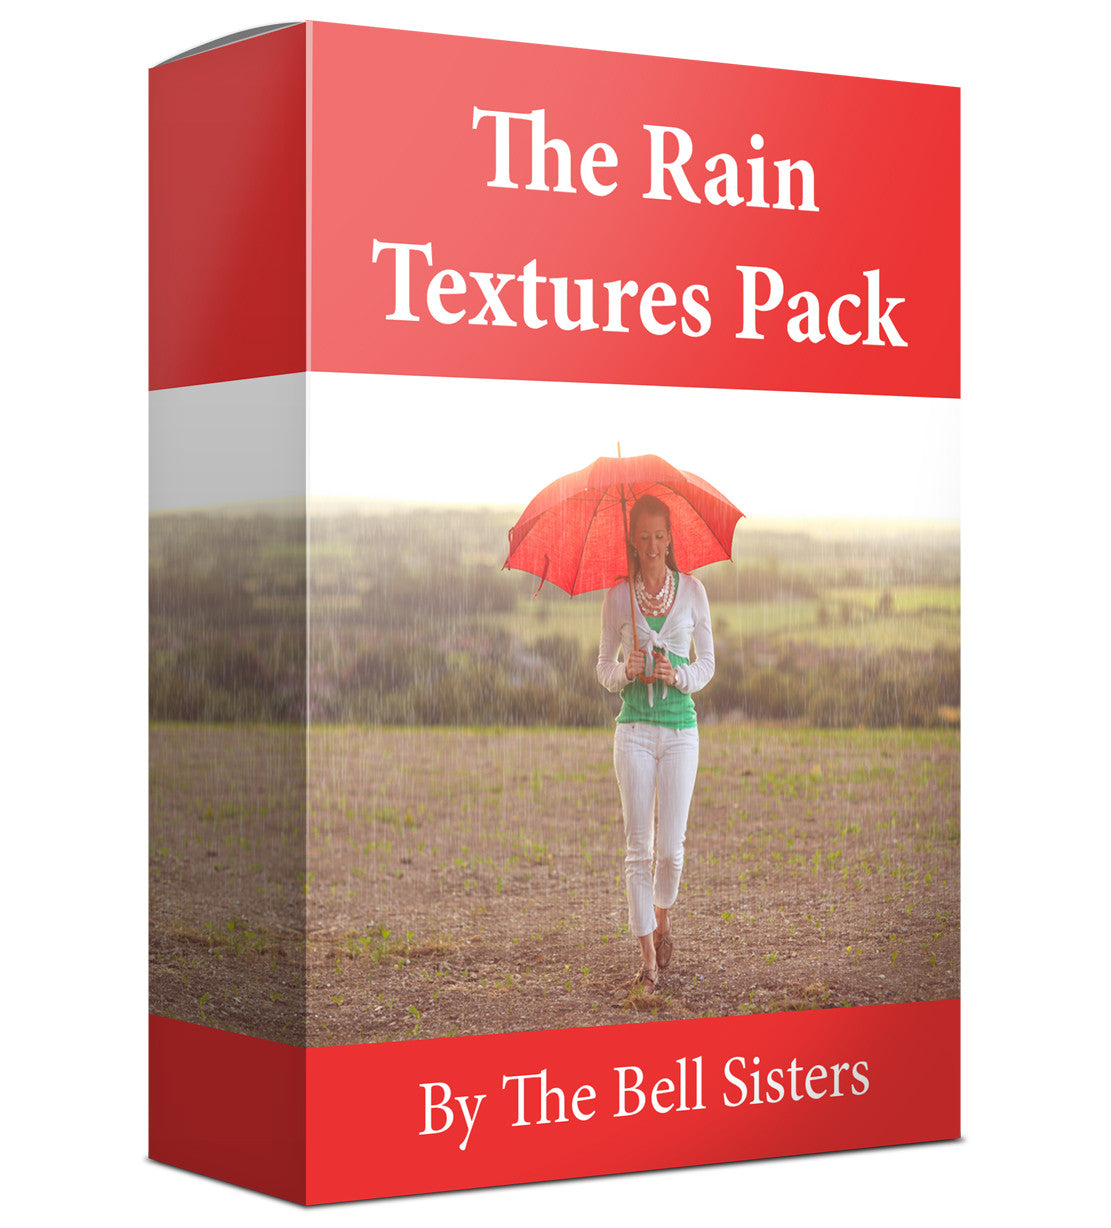 The Rain Textures Pack